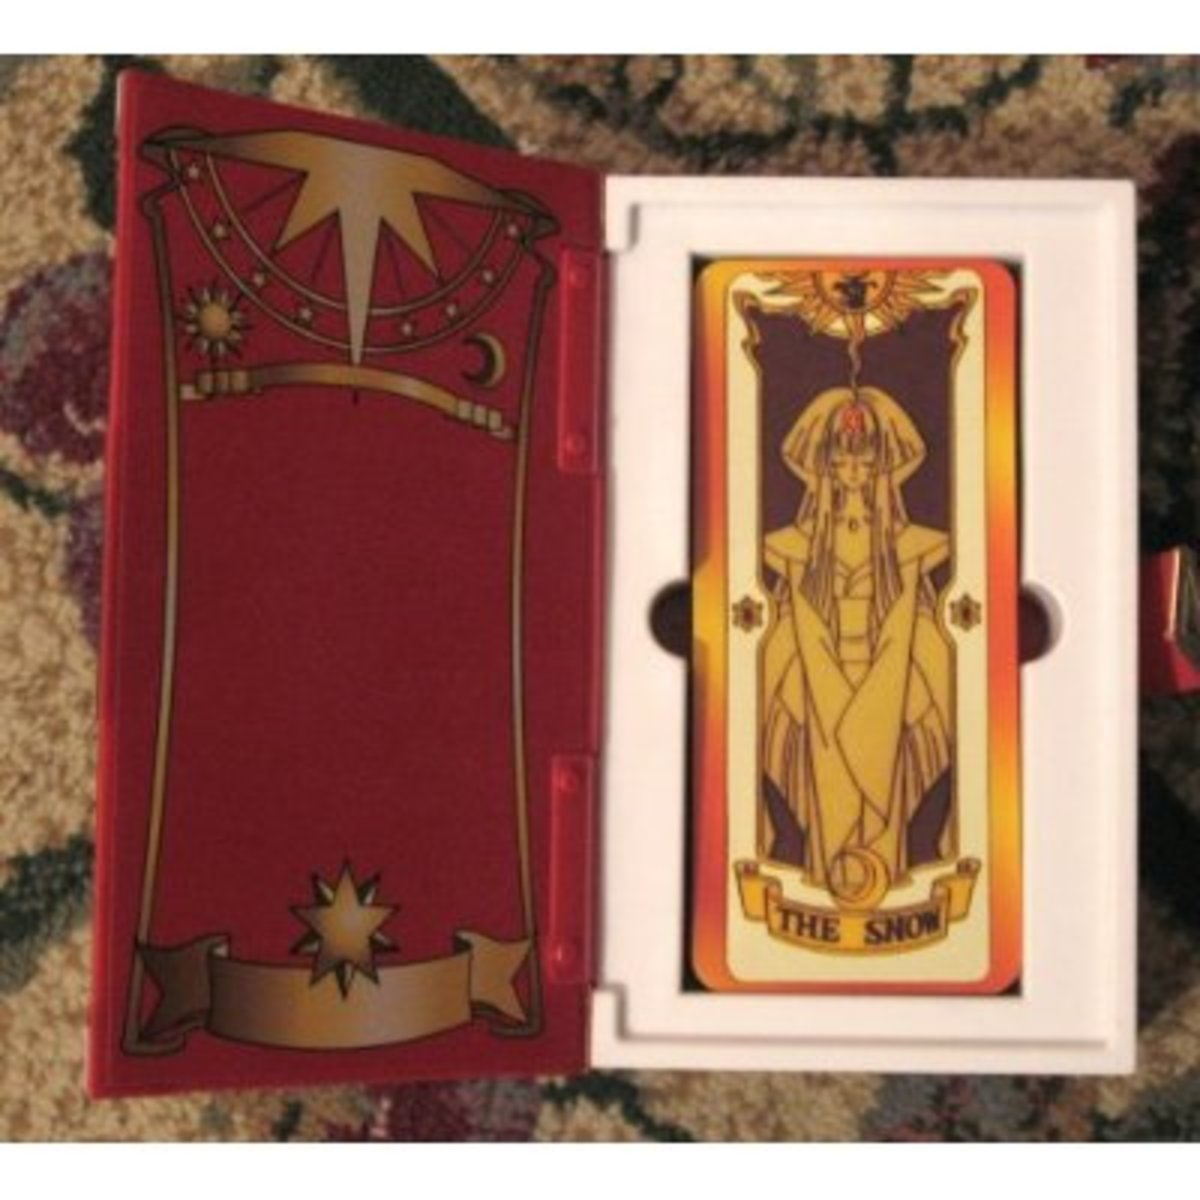 Feel like Card Captor Sakura herself with your own copy of the Clow Cards and the Clow Book. Now all you need is a copy of Sakura's star staff